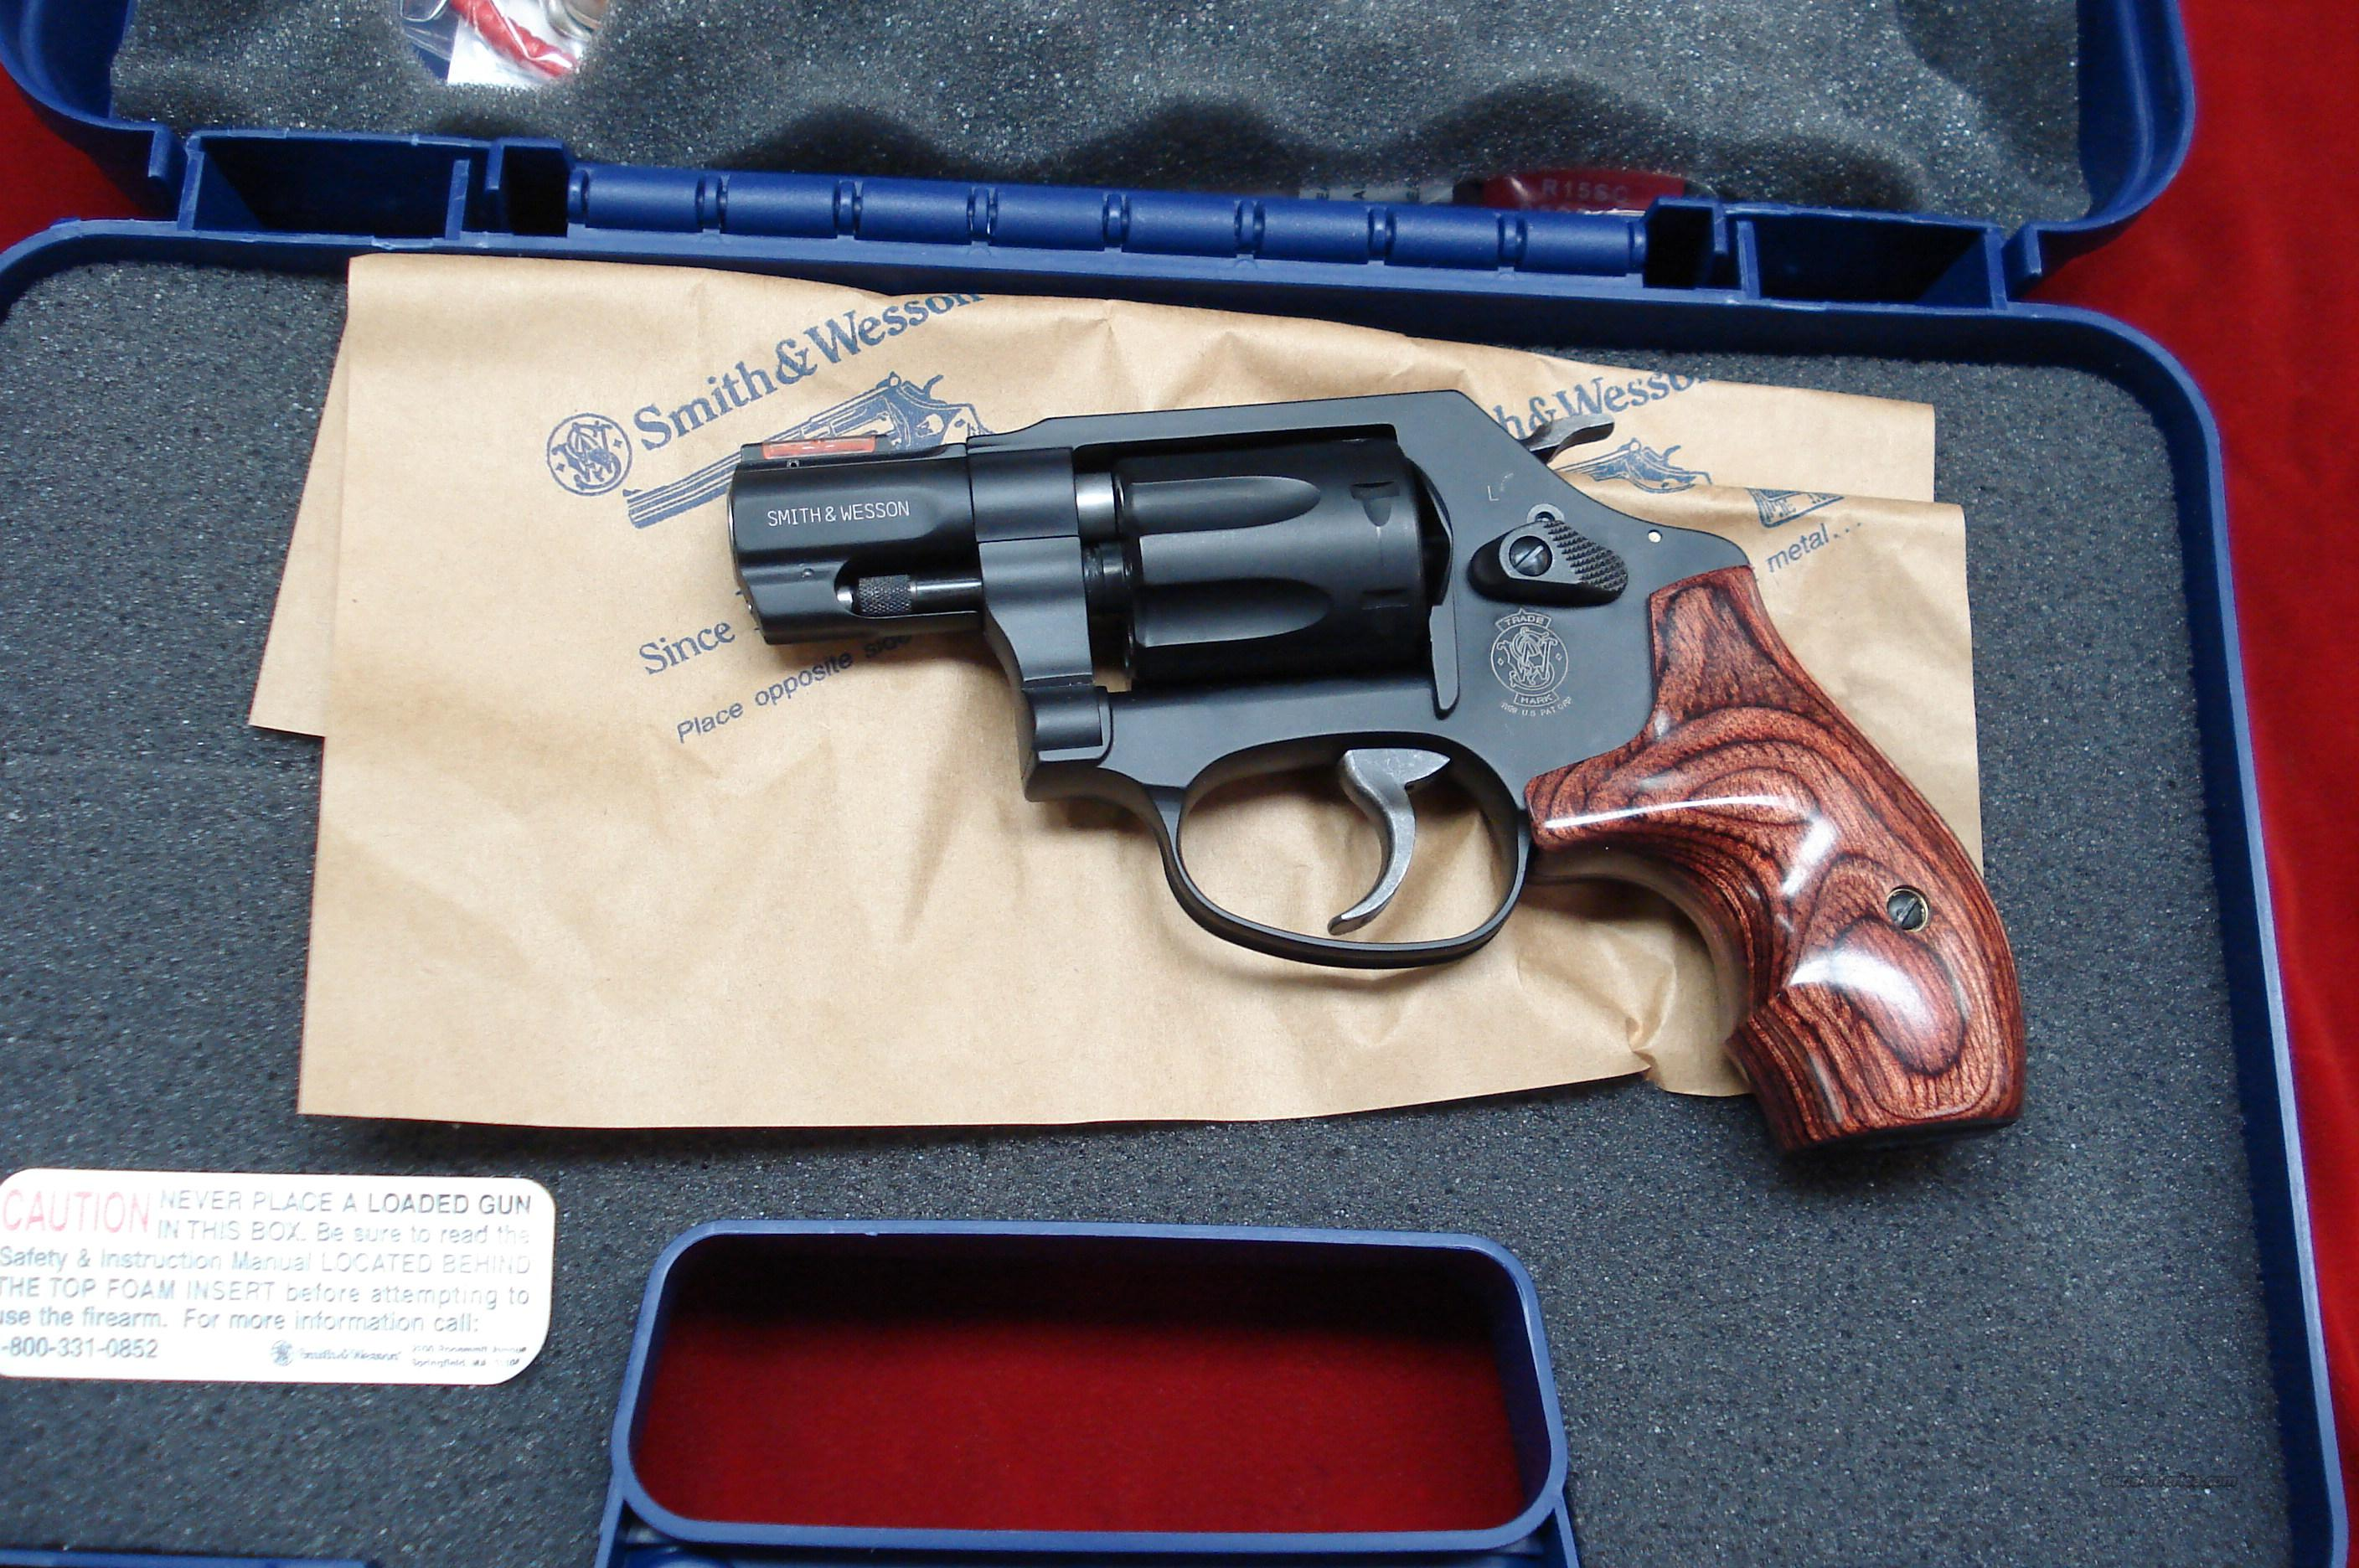 SMITH AND WESSON MODEL 351PD SCANDIUM AIRLITE 22MAG NEW  Guns > Pistols > Smith & Wesson Revolvers > Pocket Pistols